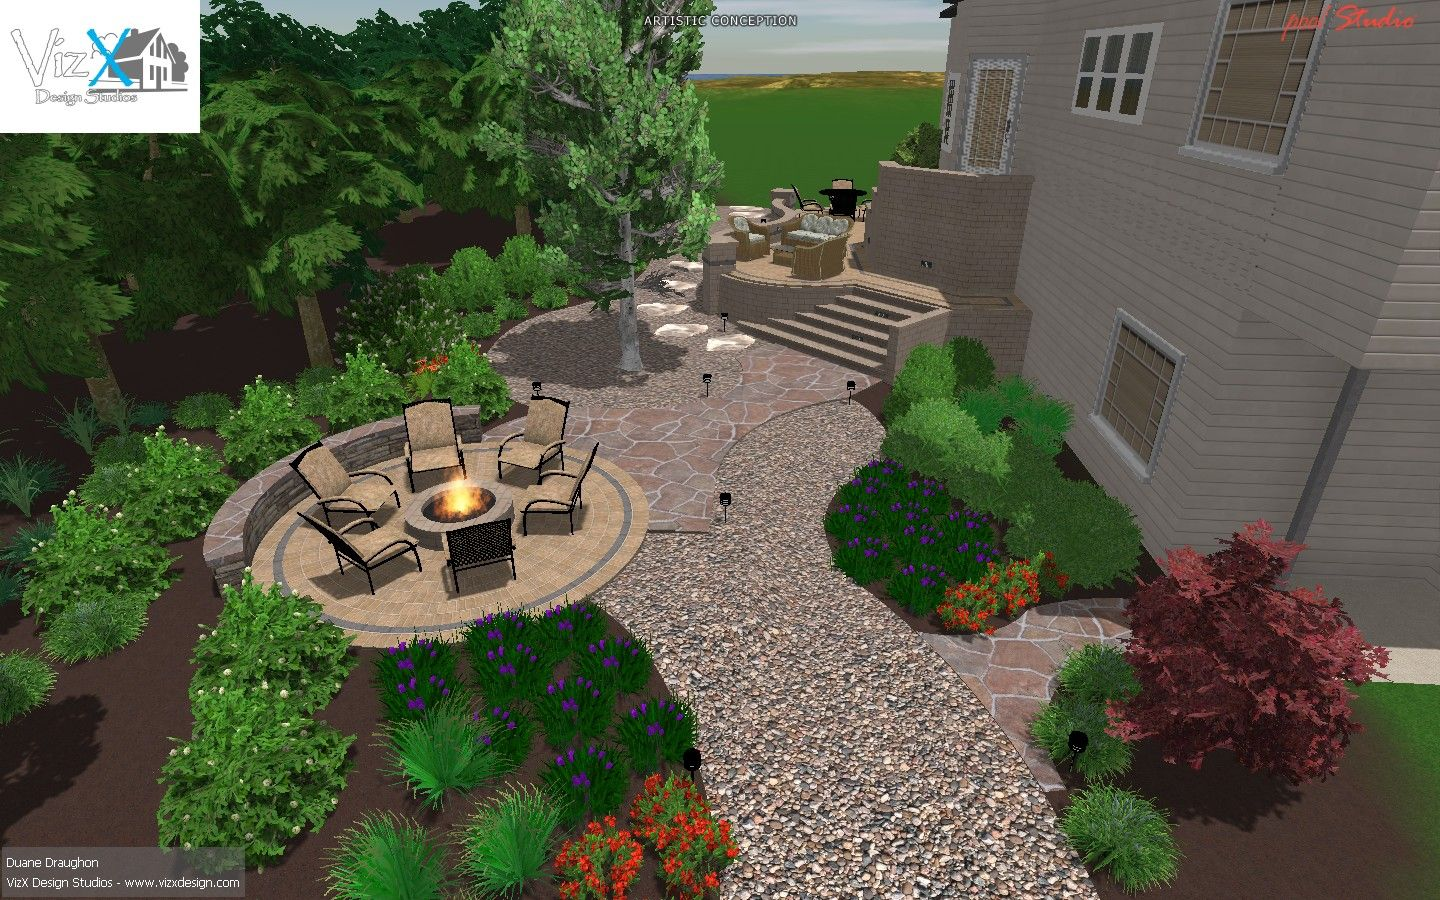 Outdoor Living 3d design w/fire pit, gavel walk, and paver ...